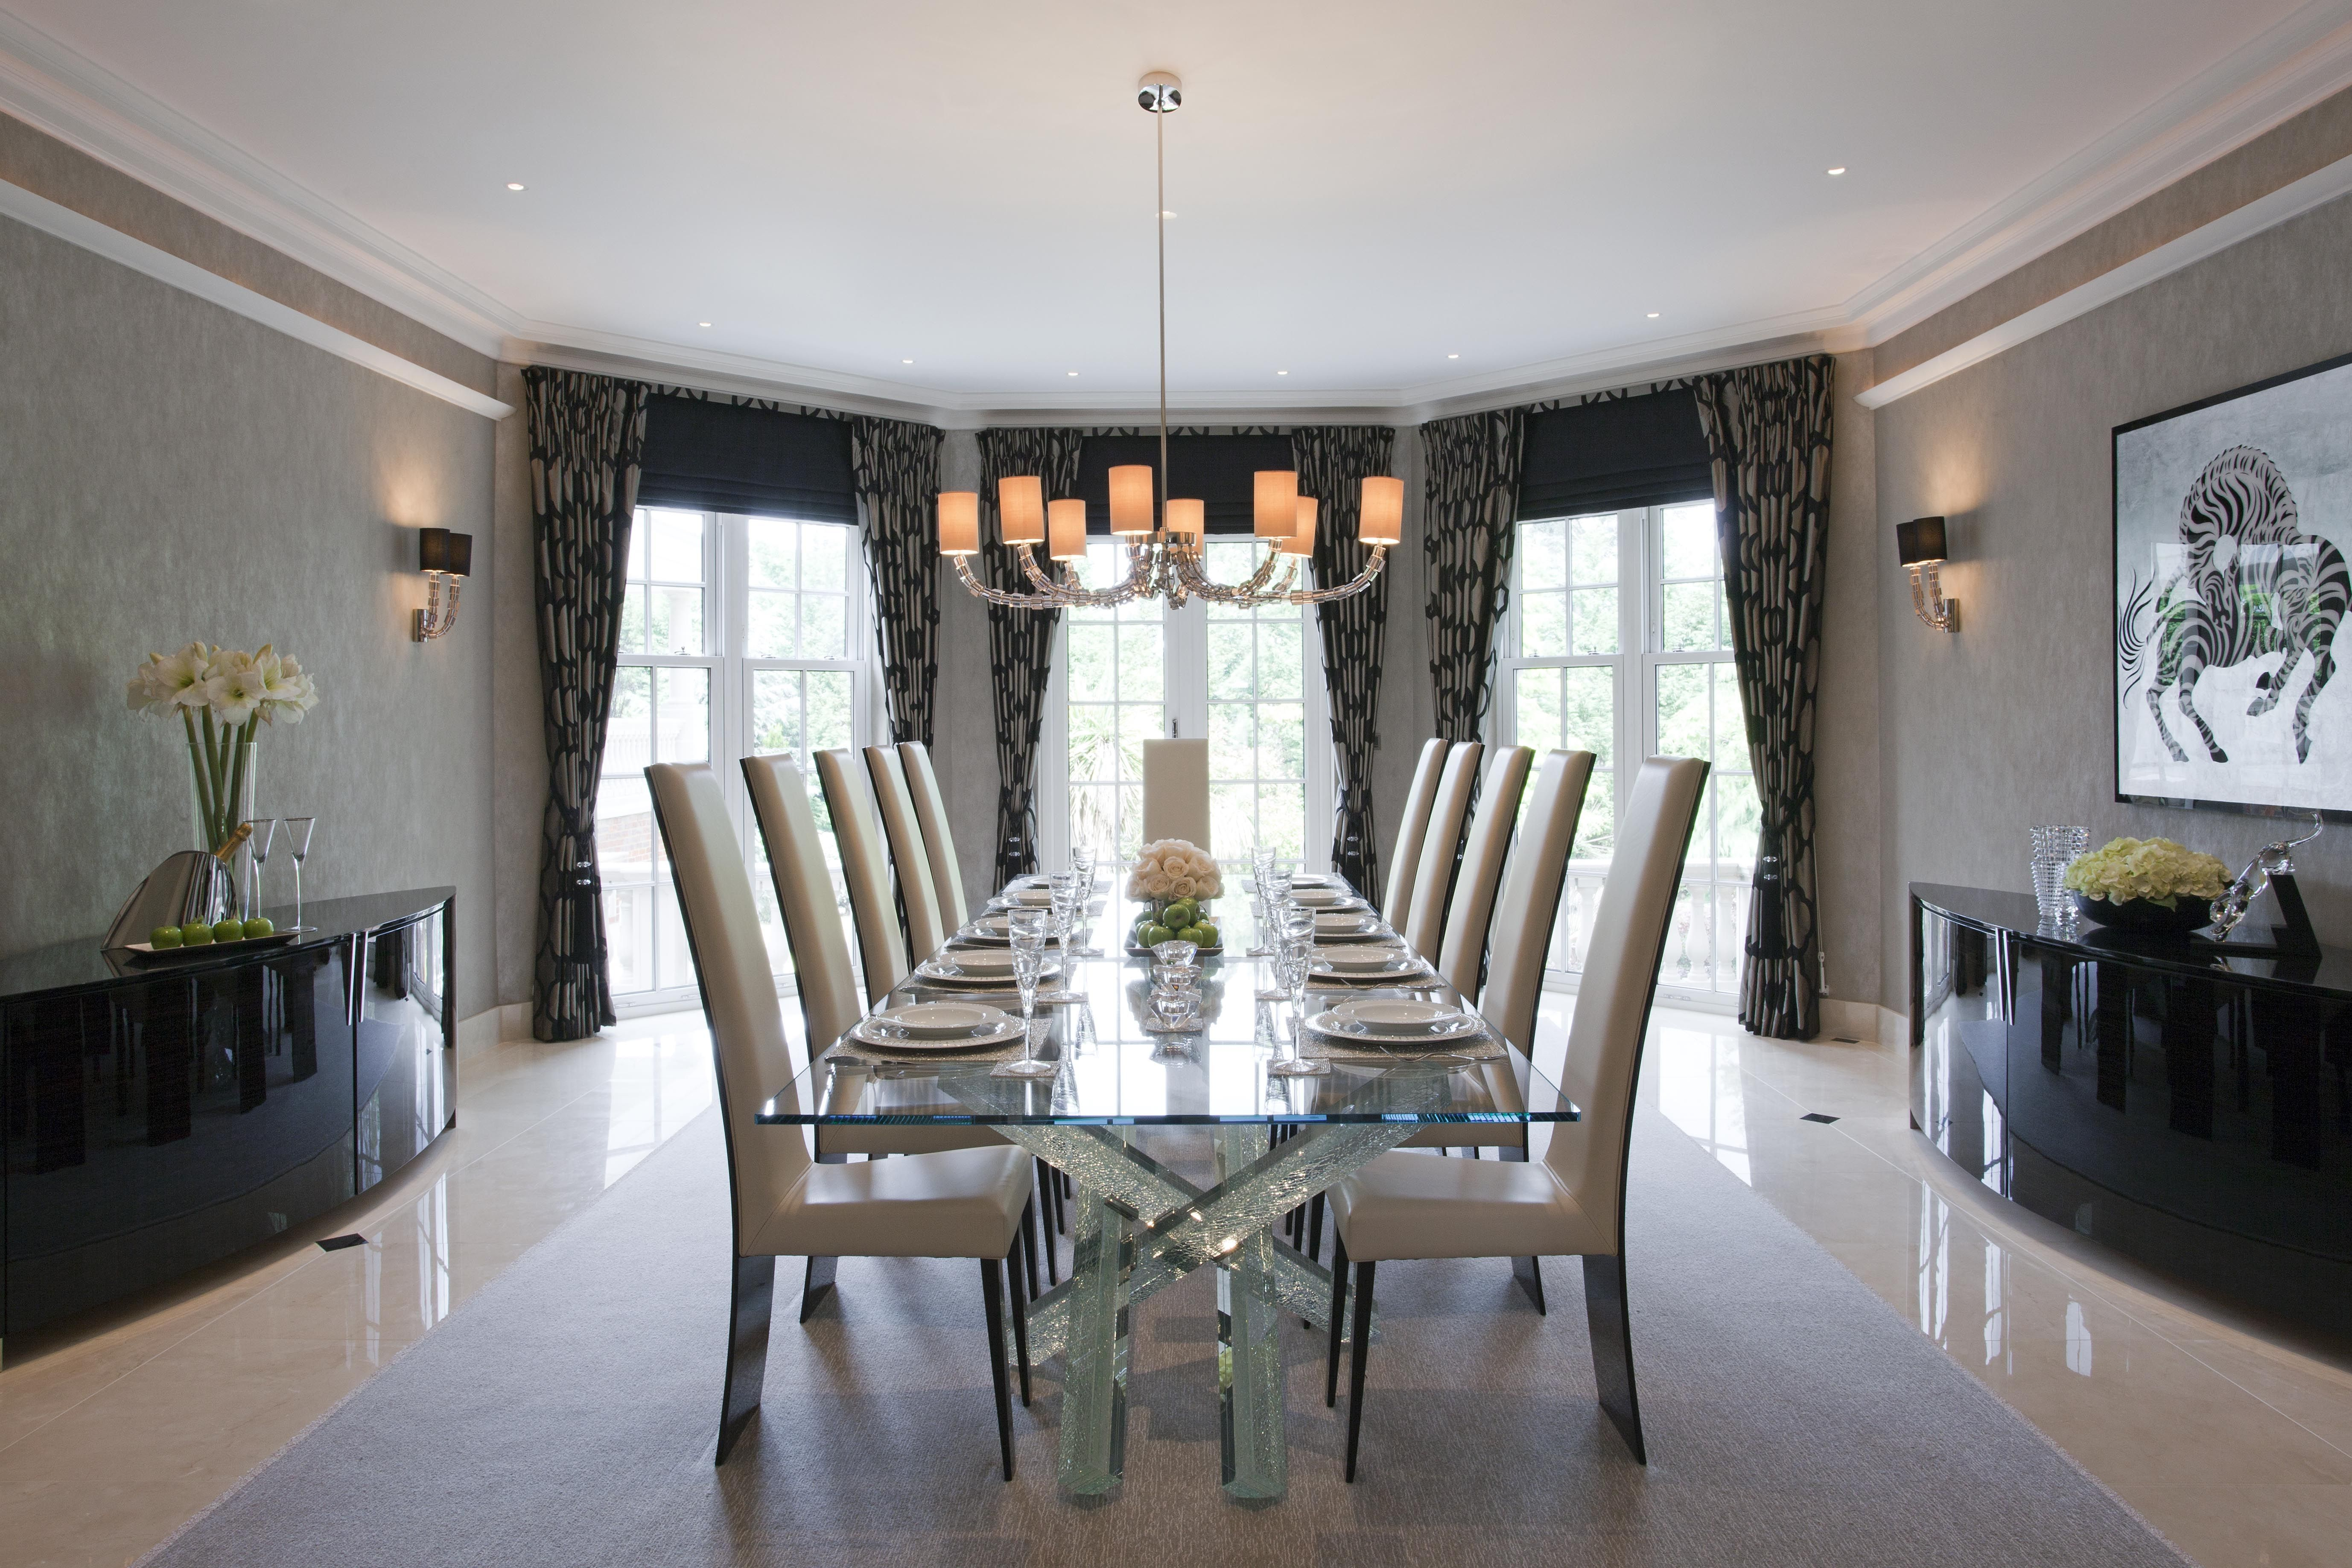 The Studio Harrods Surrey Private Residence With Images Home Decor Lighting Design Design